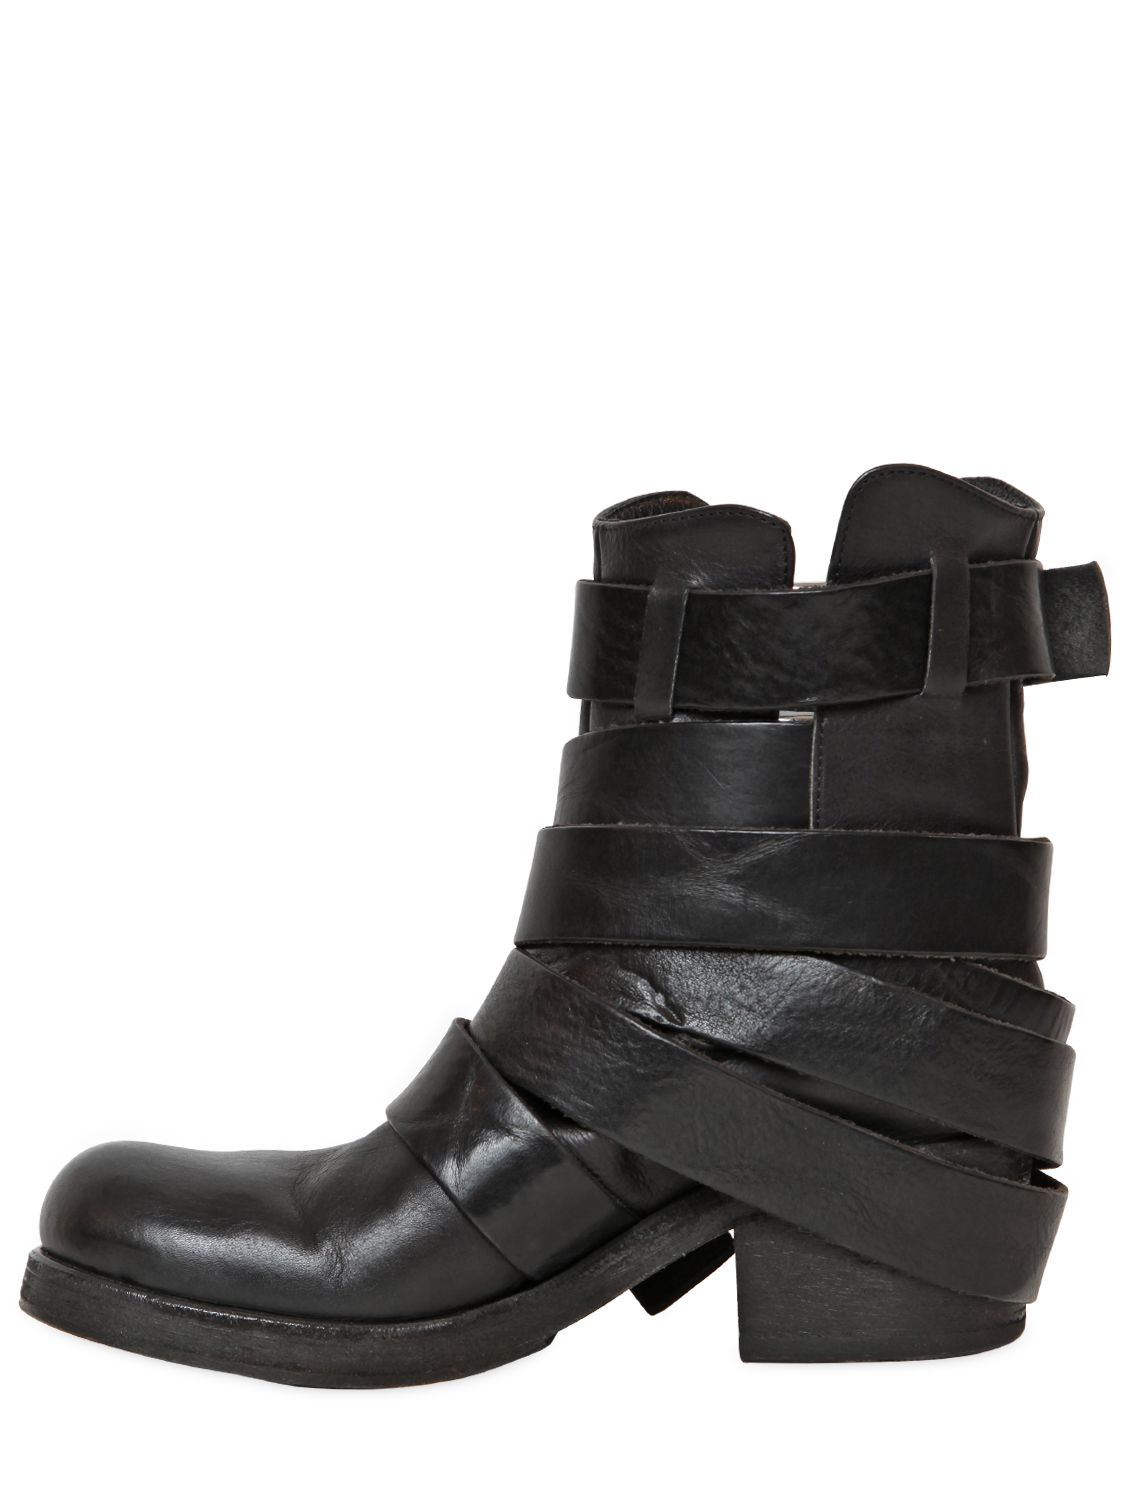 Strategia buckle boots